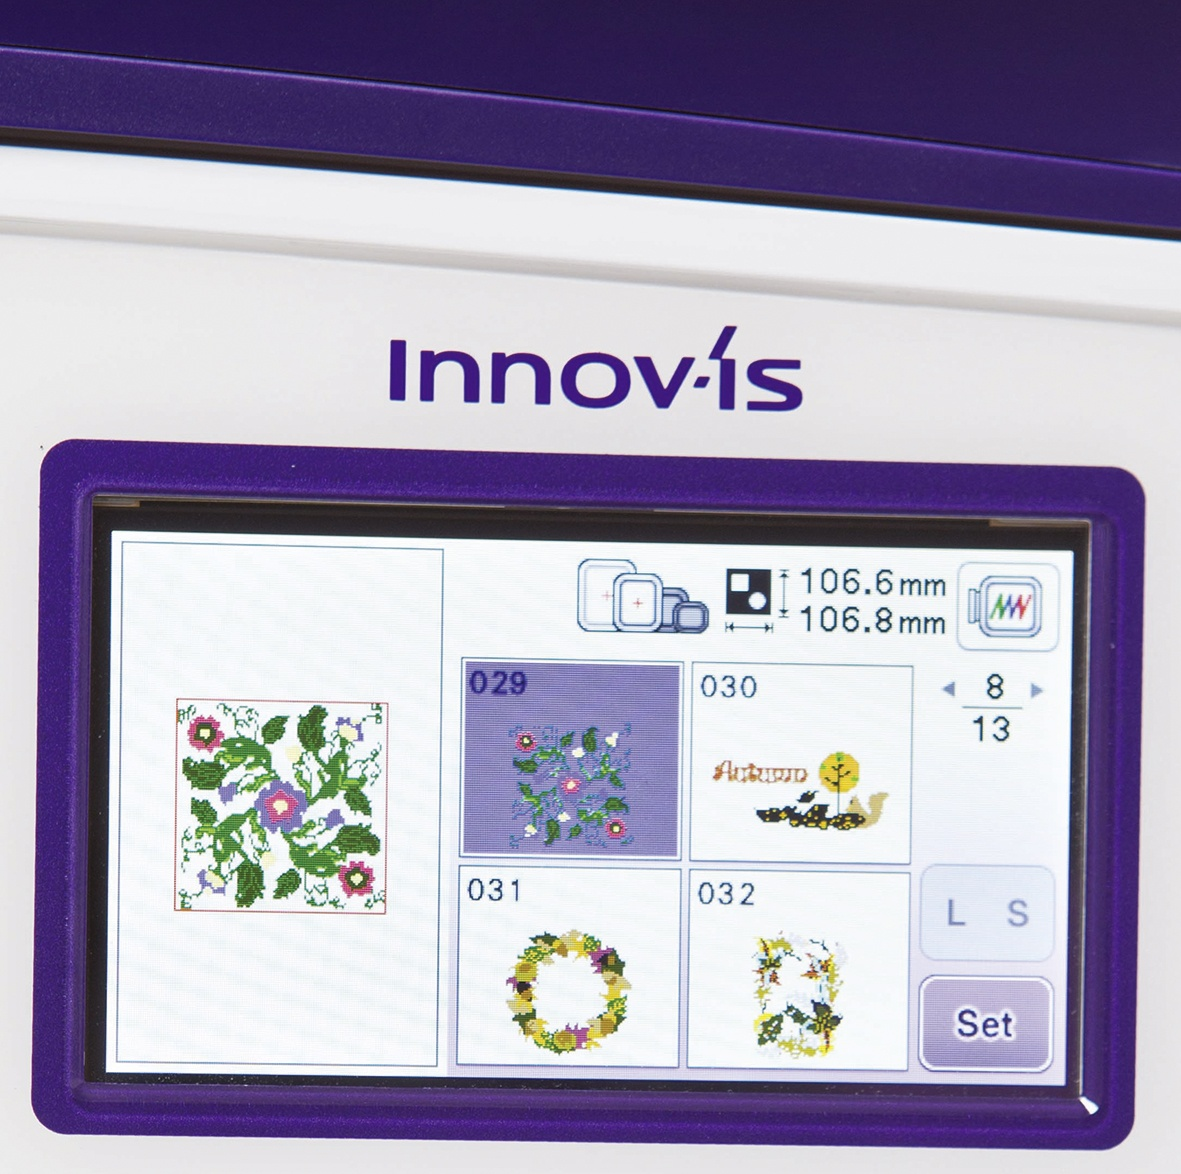 NV2600_138-built-in-embroidery-designs